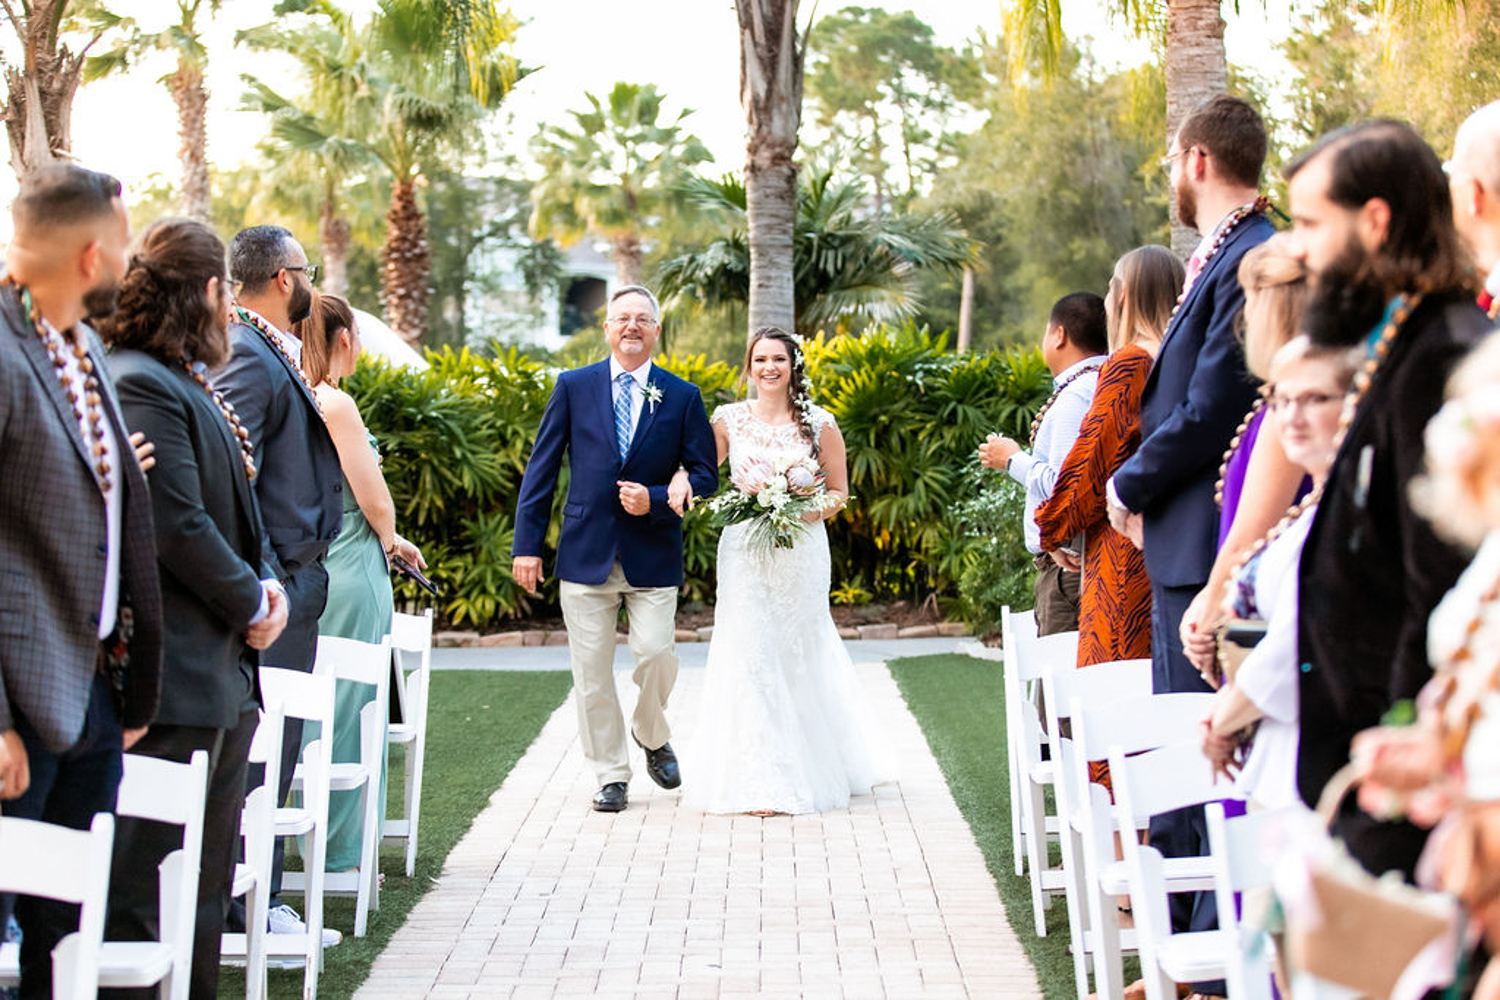 bride walking up aisle with father for wedding